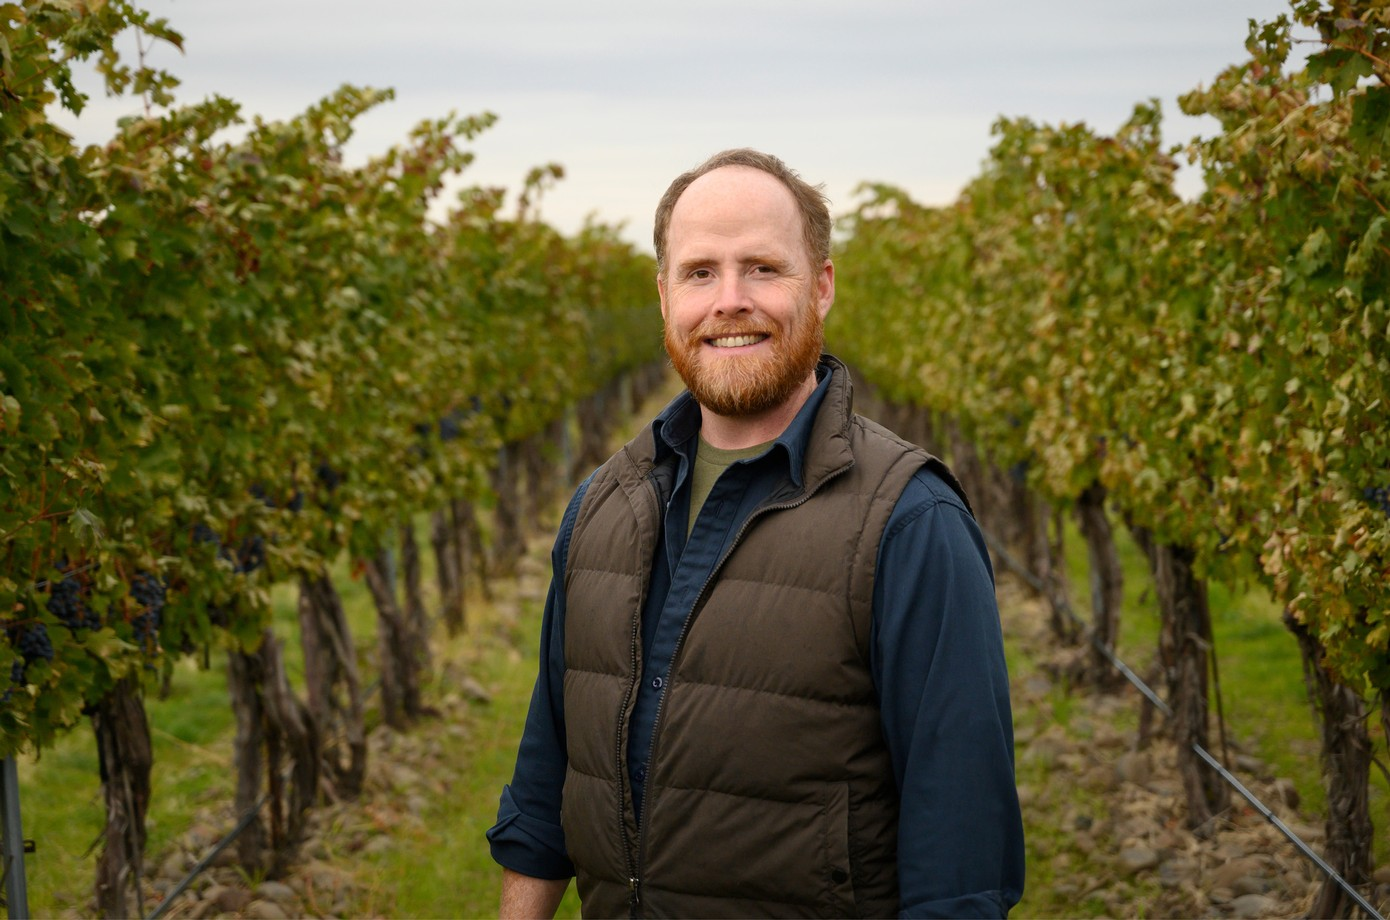 Marc Leahy, winemaker, in vineyard with rocks